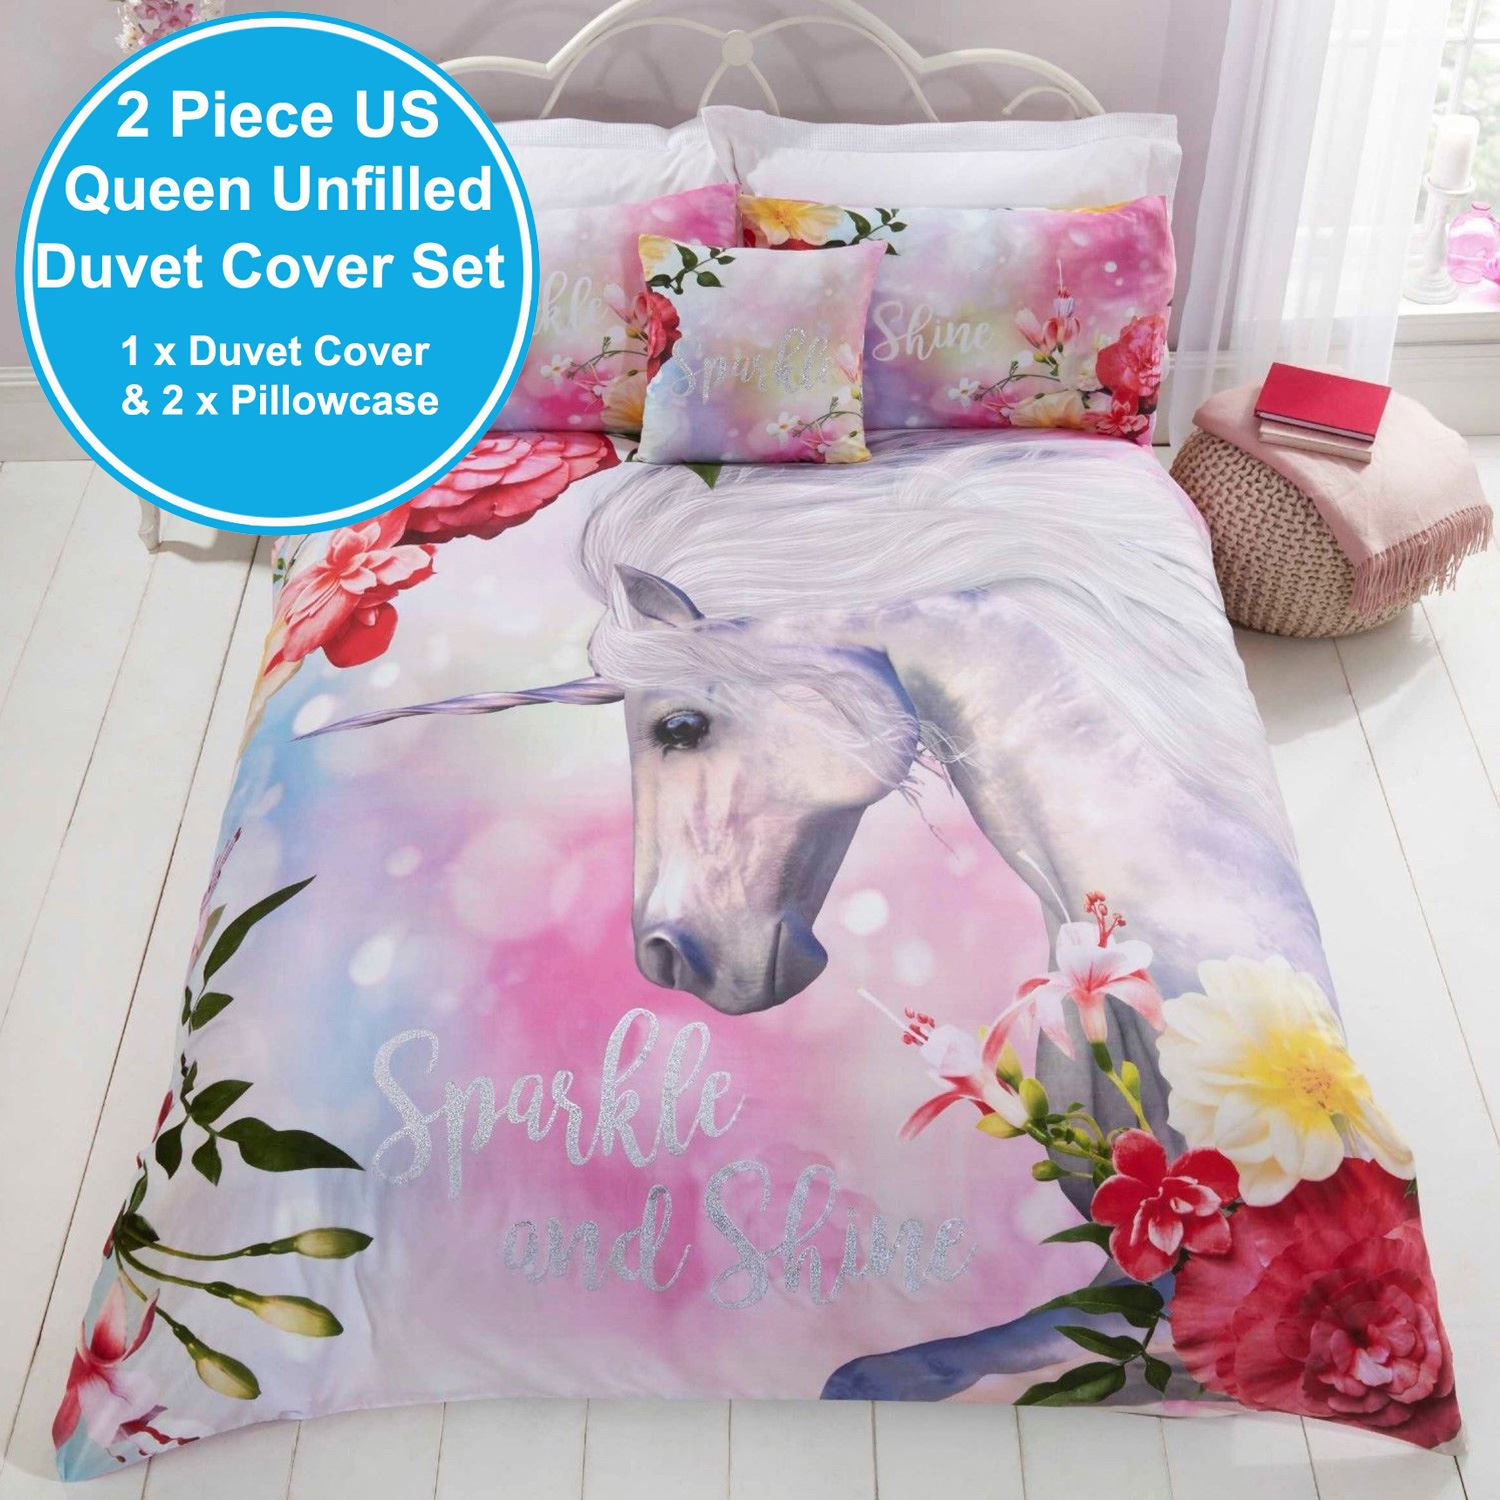 Sparkle & Shine Unicorn King Size Duvet Cover & Pillowcase